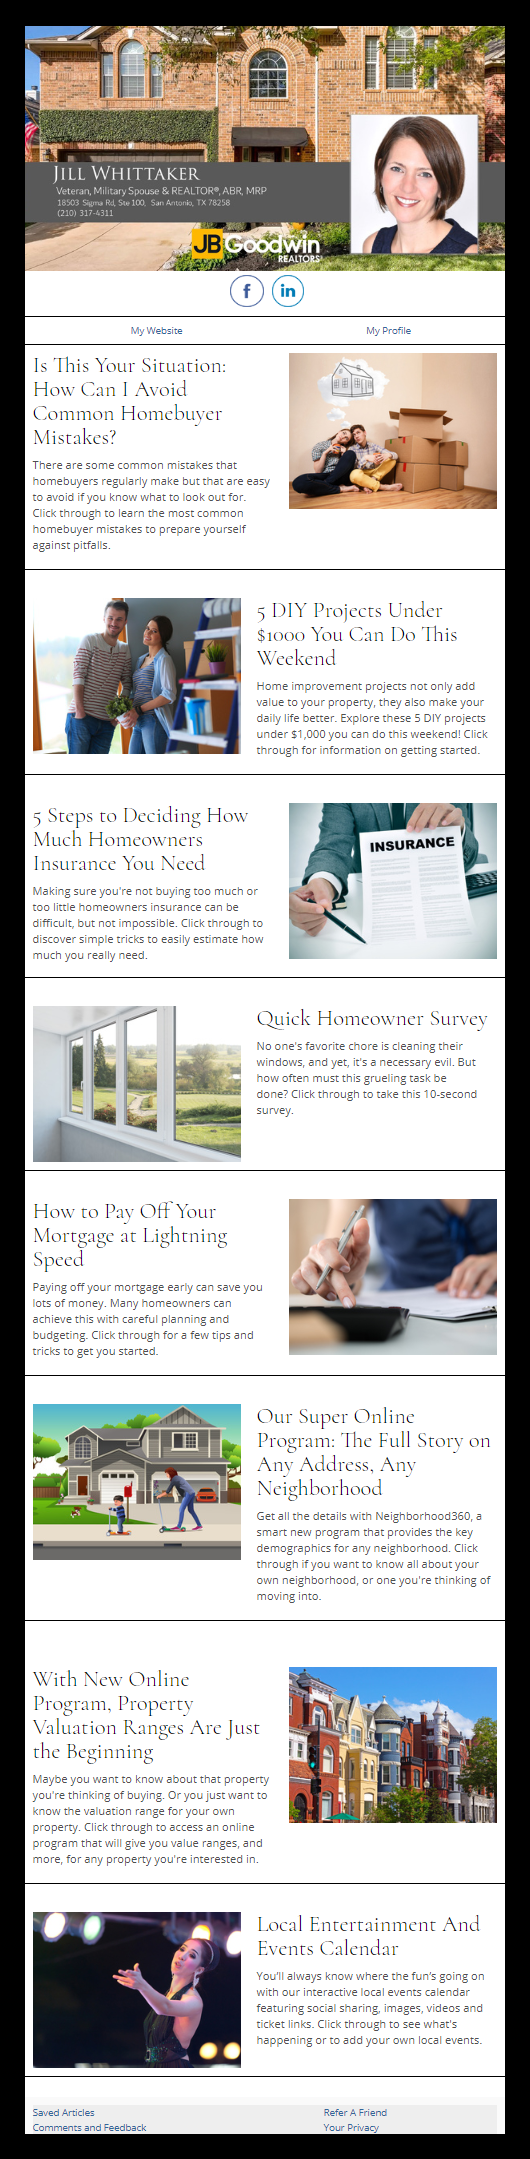 JB Goodwin - HomeActions Sample Email Newsletter